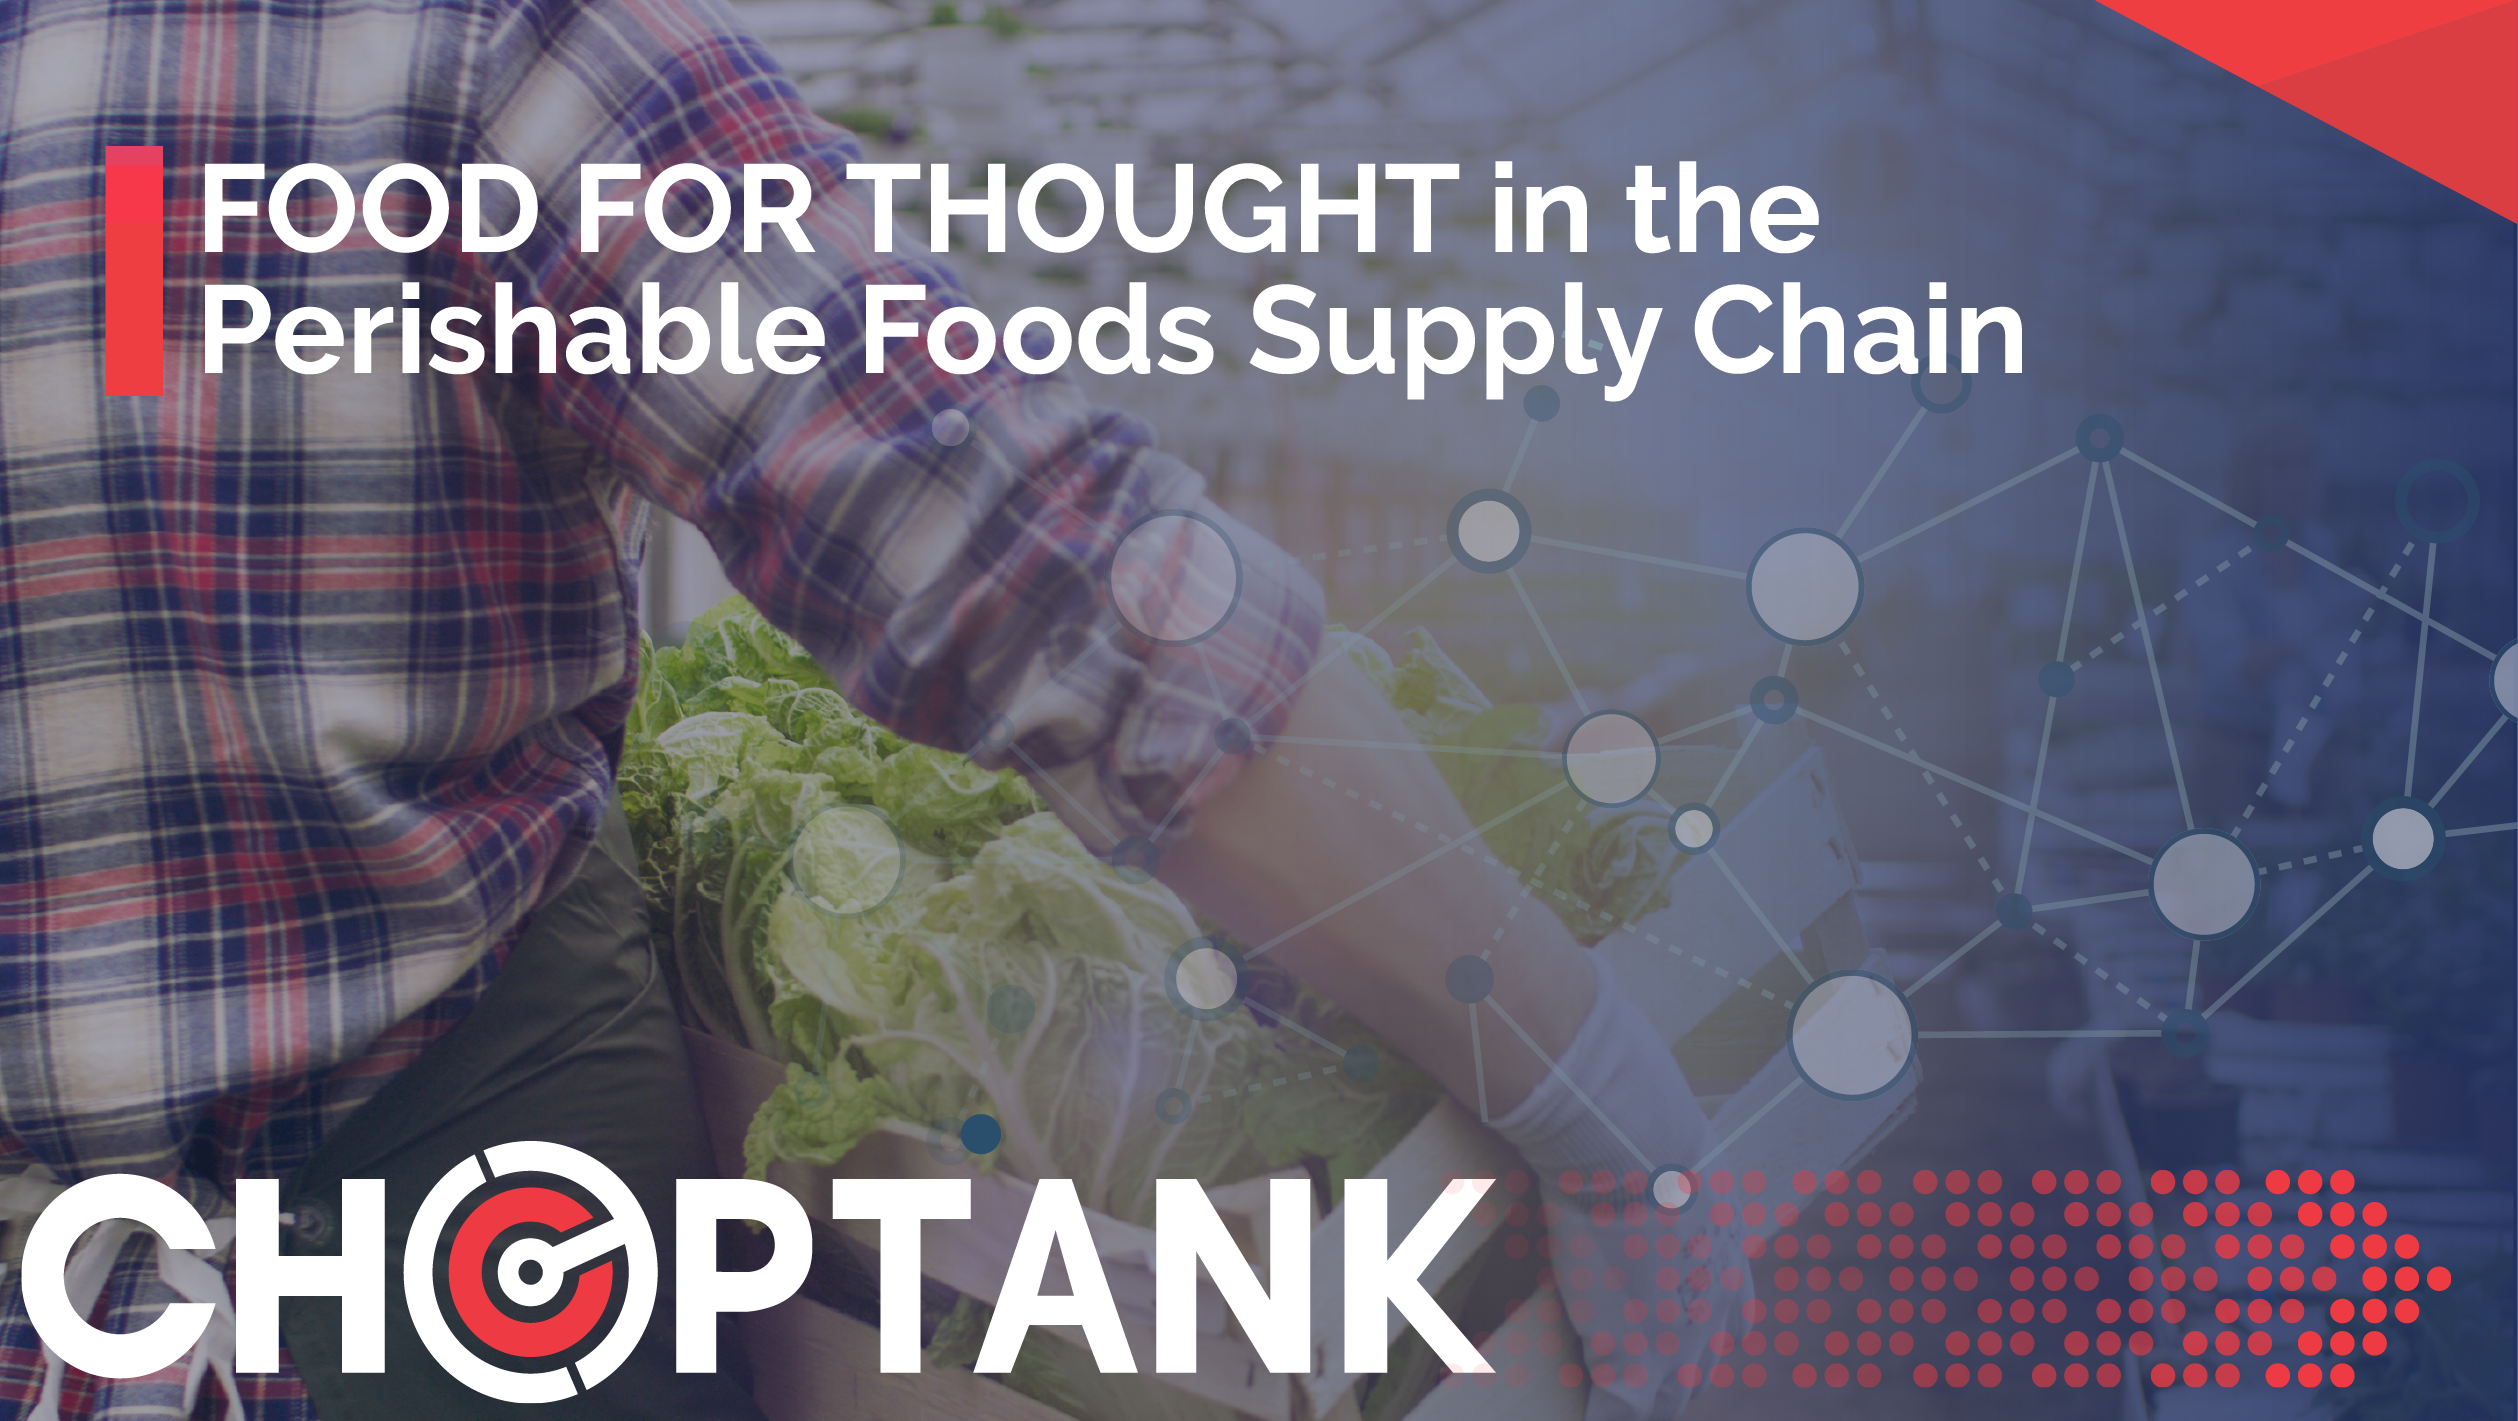 Food for thought in the perishable foods supply chain